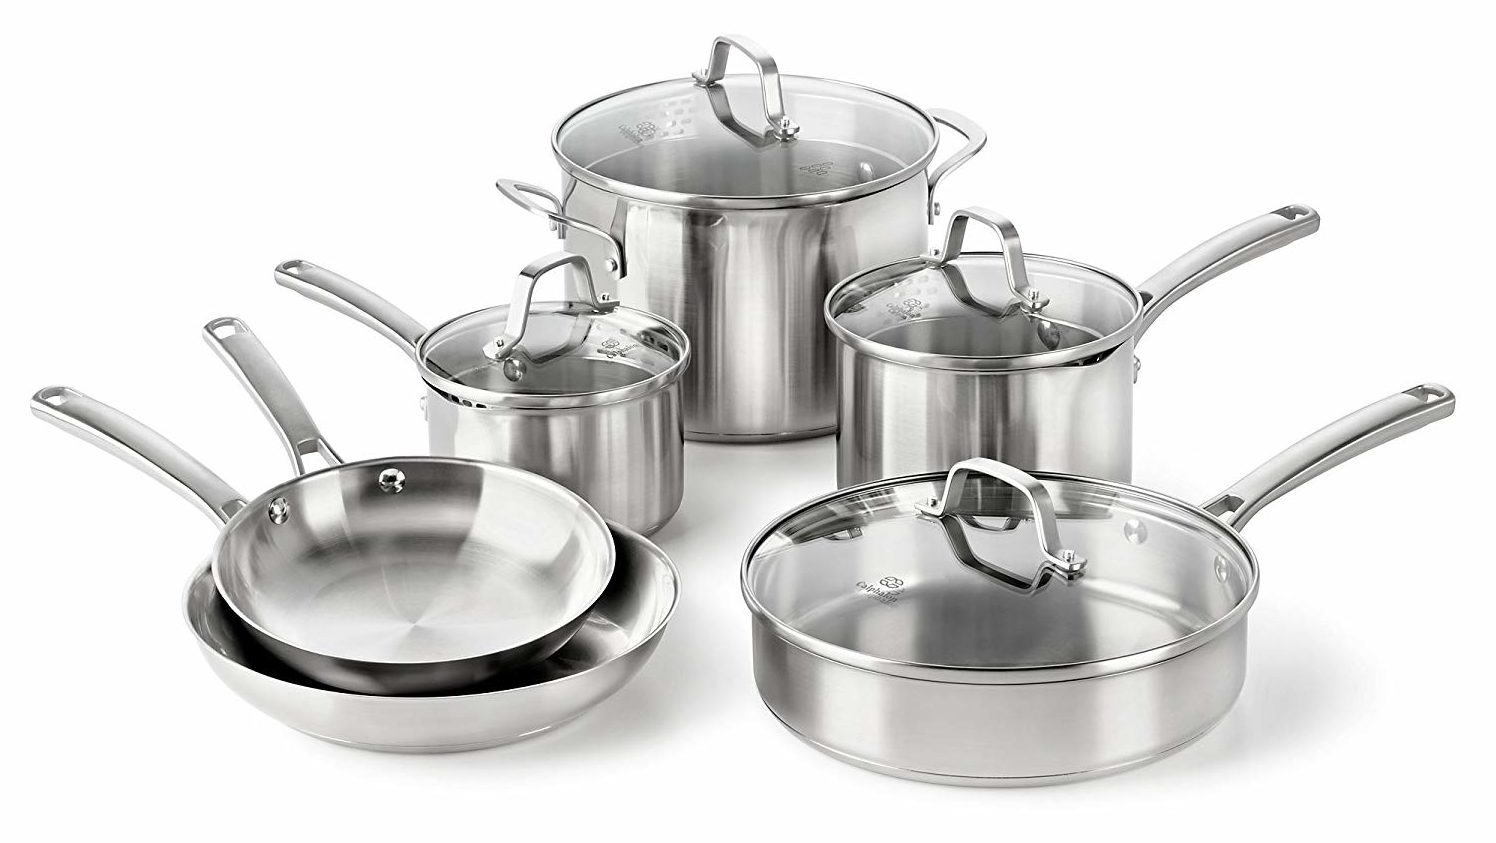 Calphalon Classic Reviews - Nonstick, Ceramic And Stainless